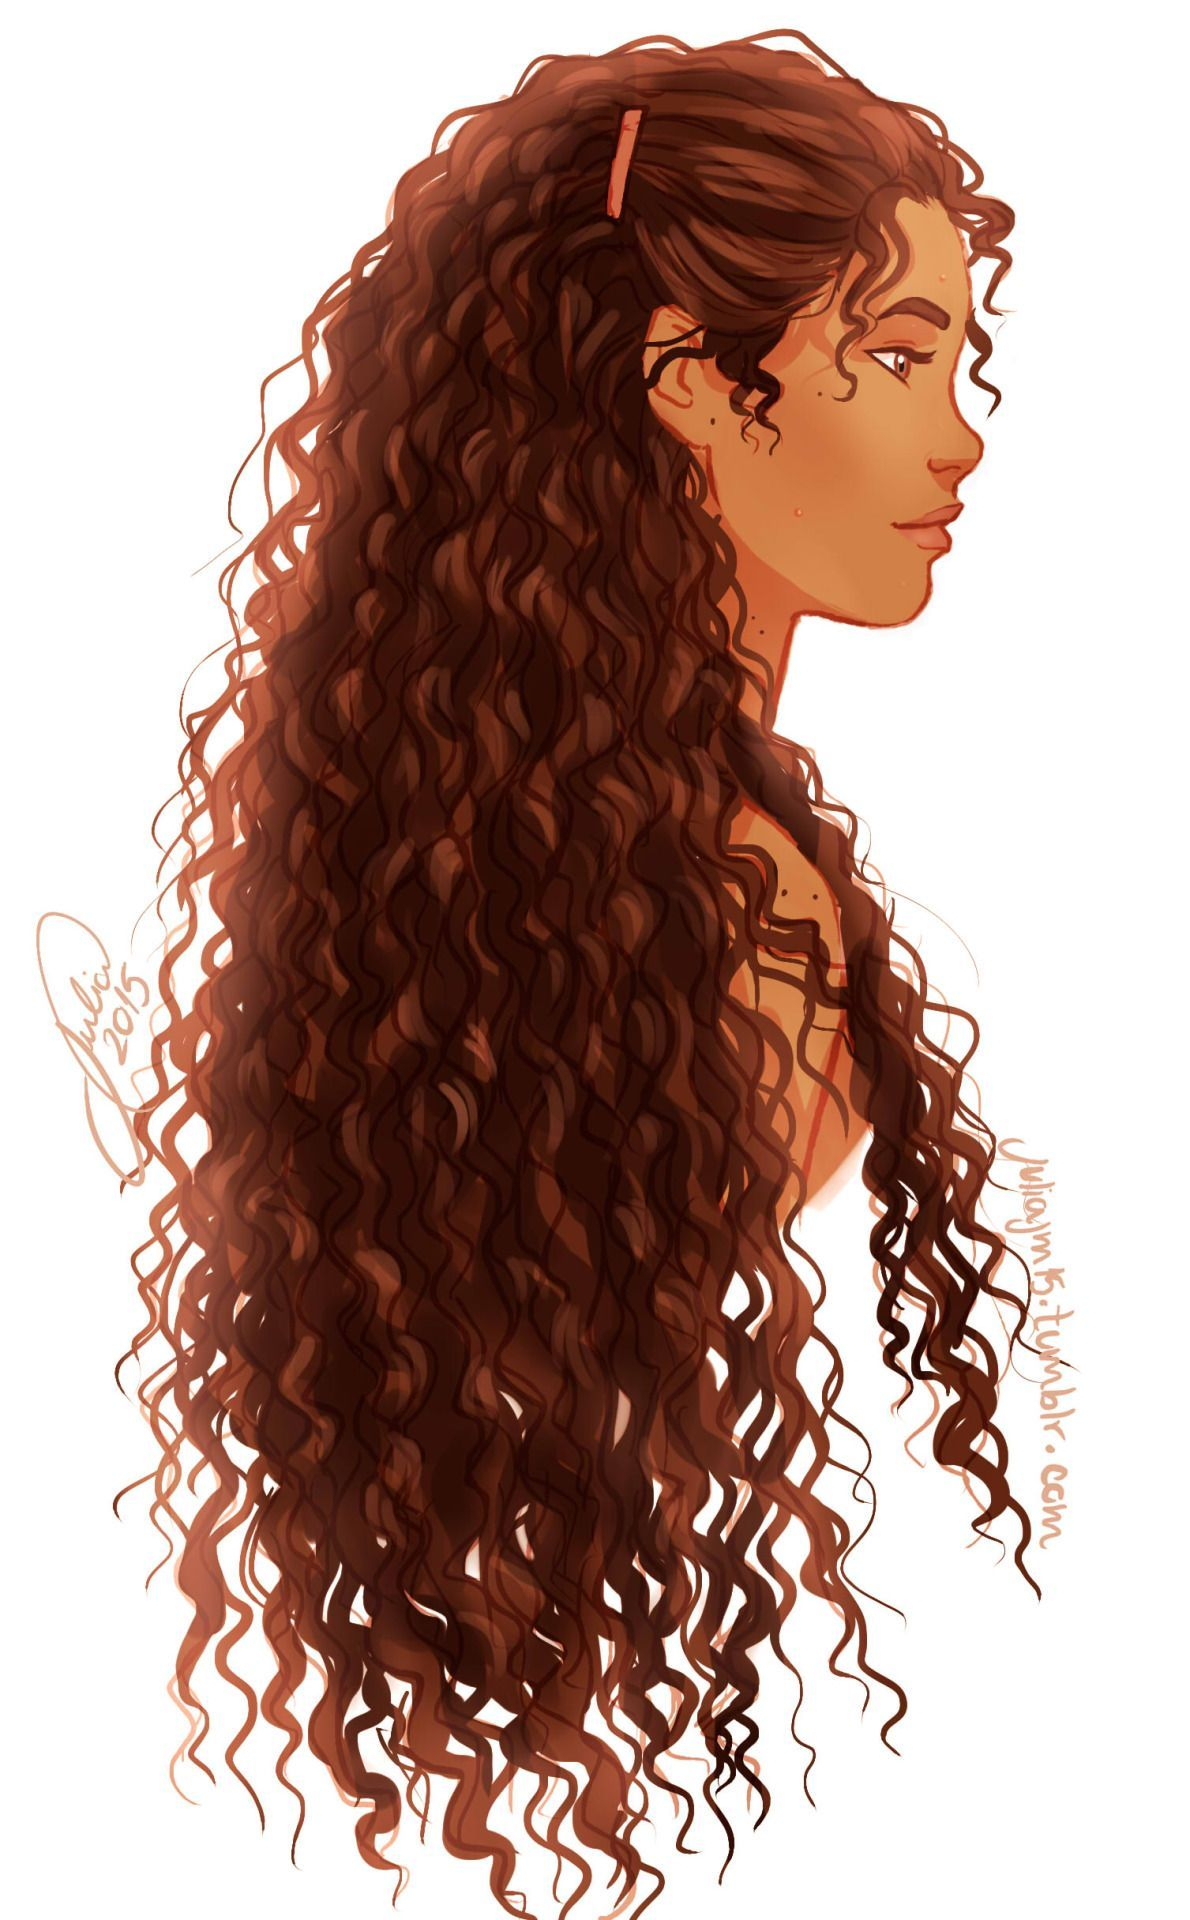 Curly Hair Cartoon Wallpapers Top Free Curly Hair Cartoon Backgrounds Wallpaperaccess